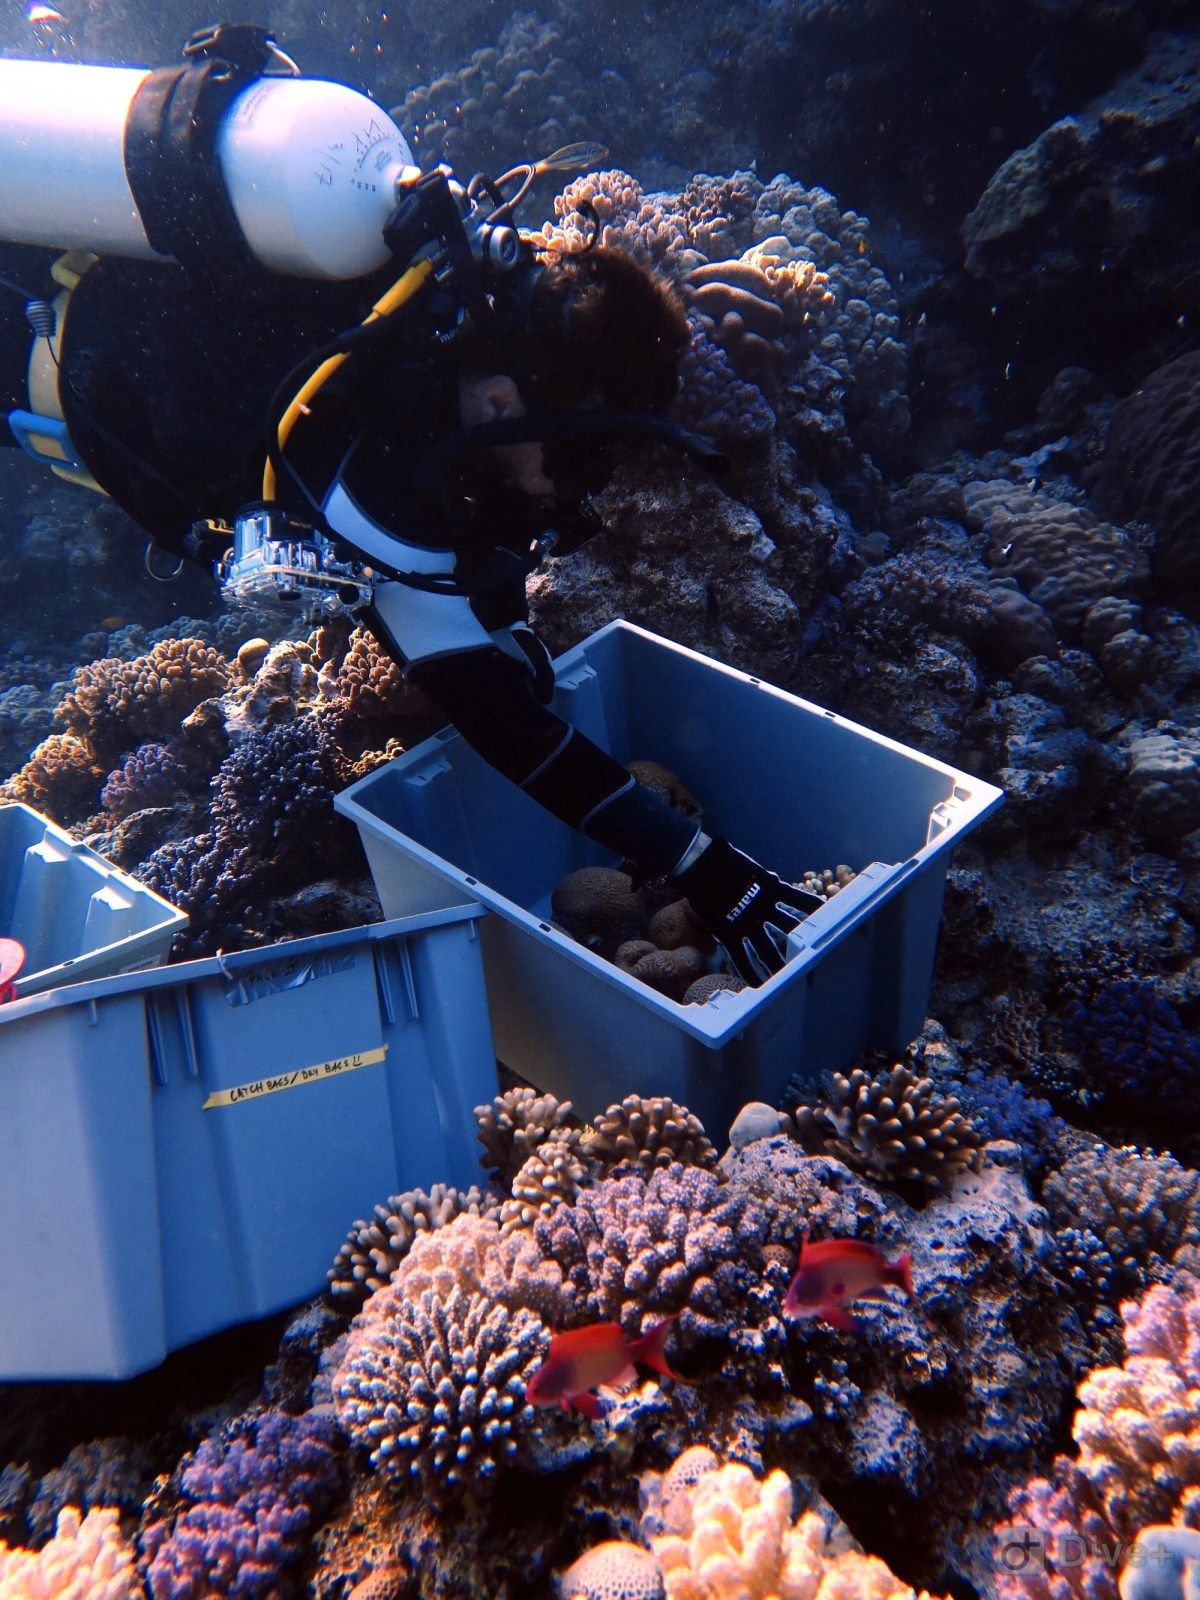 <p>Researchers collecting coral to study in labs</p>